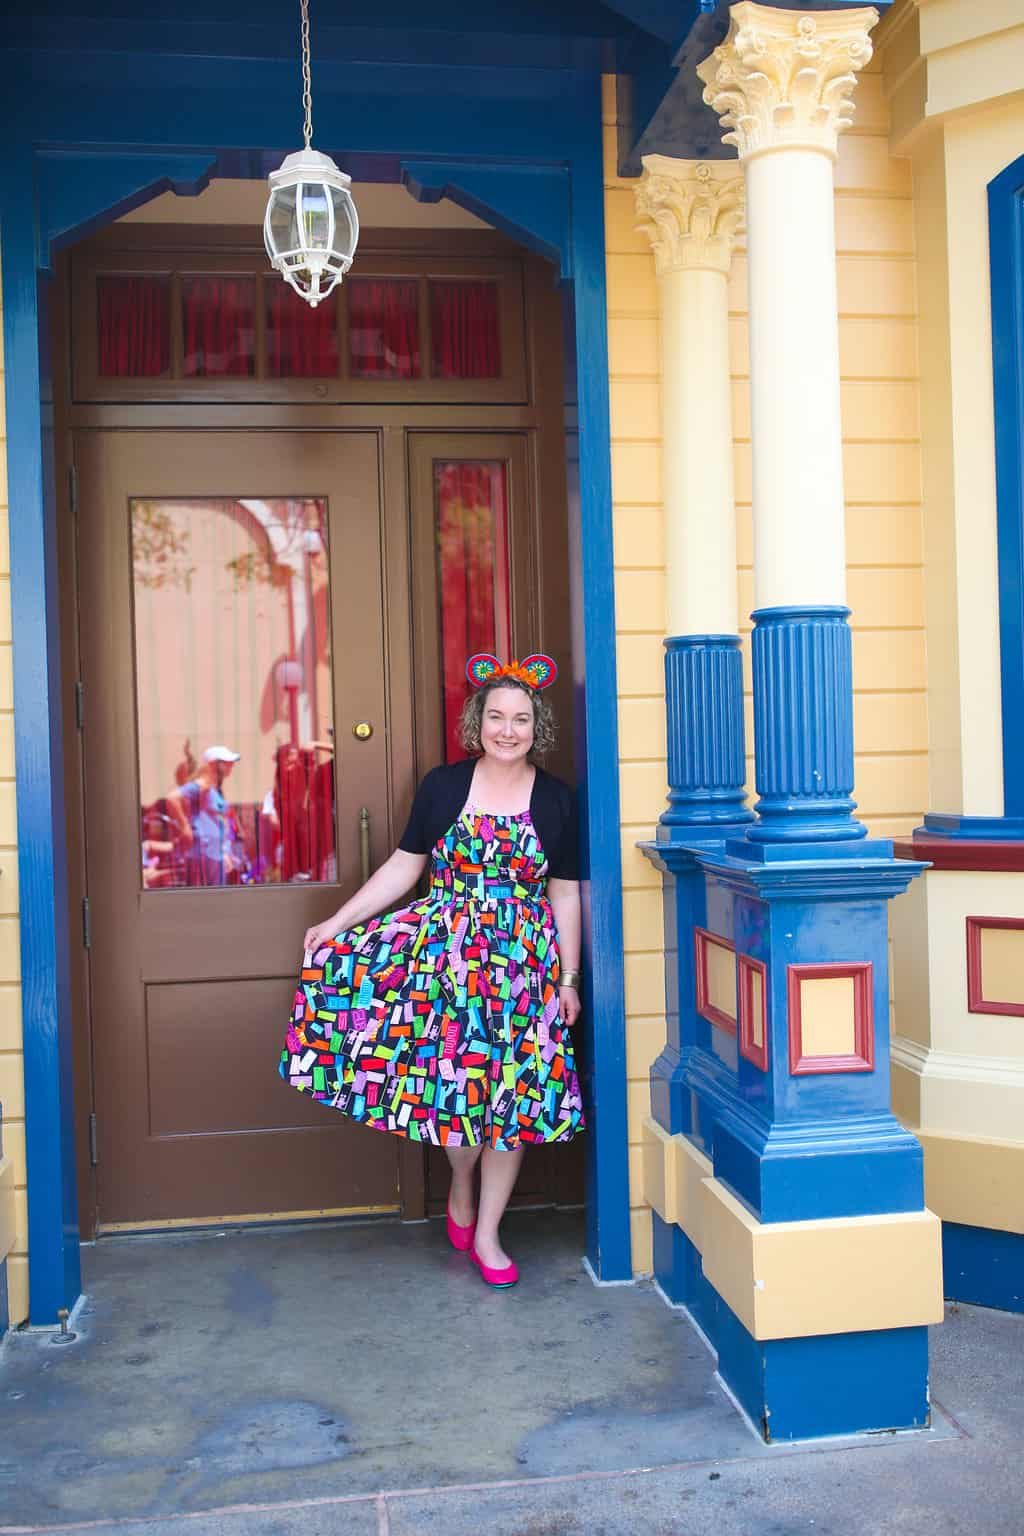 You know what to wear to Pixar Fest when you're hanging out with your BFFs, but what will you do? There are so many new and exciting Pixar Fest additions at both Disneyland Resort and Disney California Adventure Park. Don't miss these must-do experiences. #pixarfest #disneyland #familytravel #disneyvacation #disneymom  via @simplifyingfamily